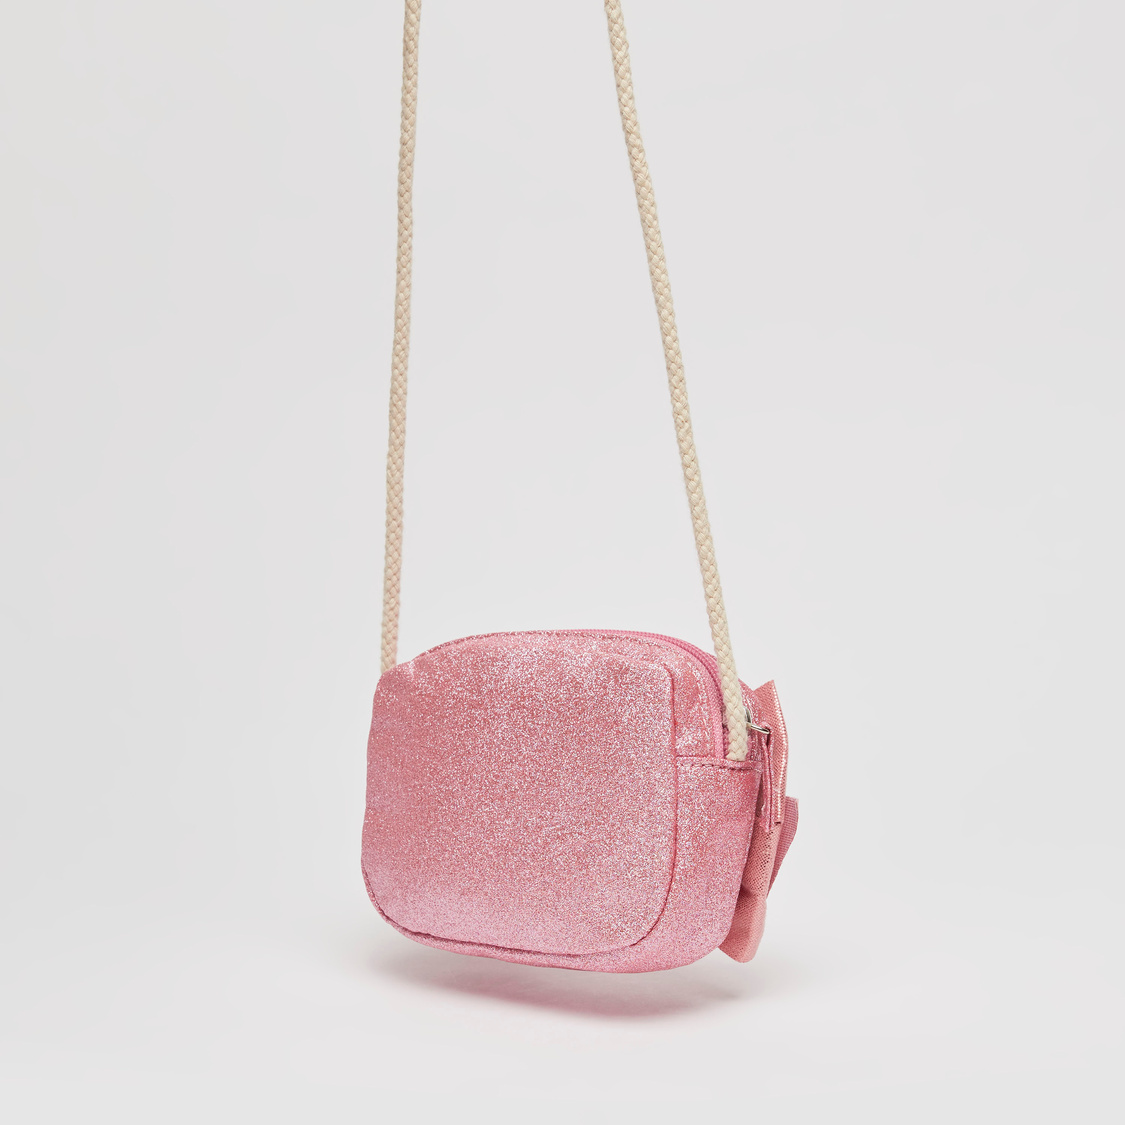 Embellished Crossbody Bag with Strap and Zip Closure